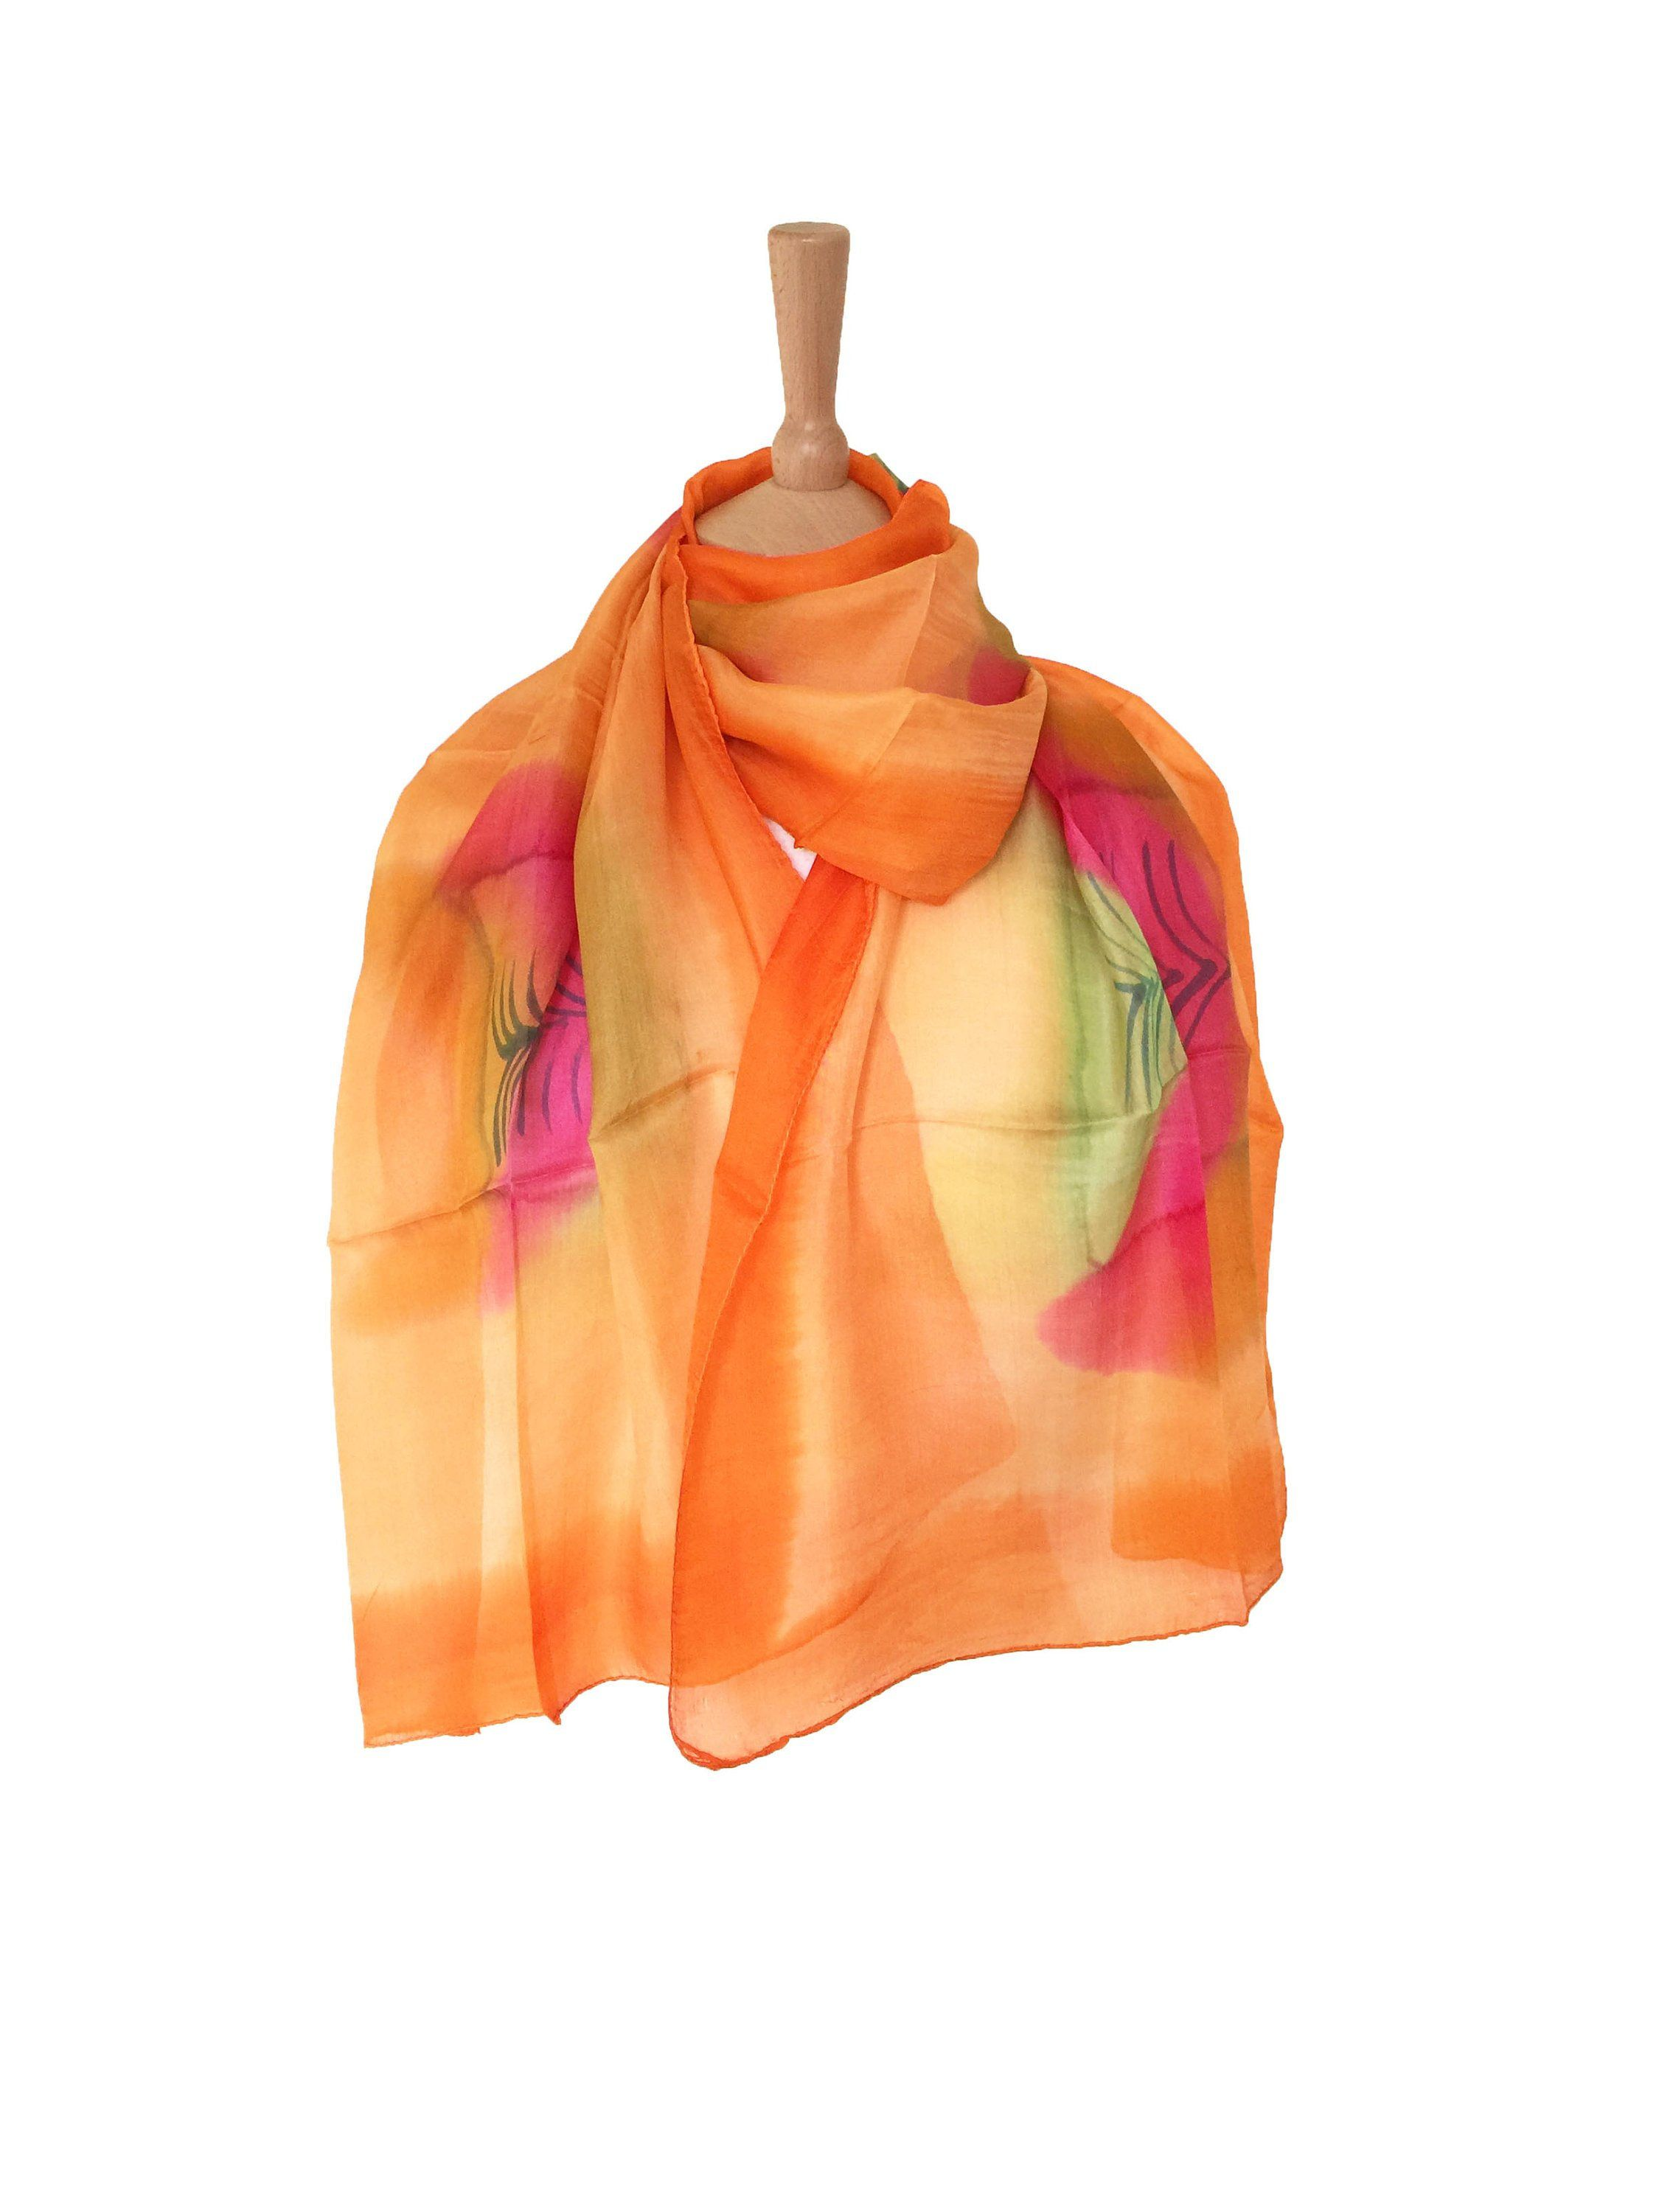 7ec76f241 Silk Scarf For Women Yellow Orange And Green Mothers day Gift , Birth Day  Gift Idea For Her, Ladies Neck Tie Kerchief Muffler Bandana Wrap by ...